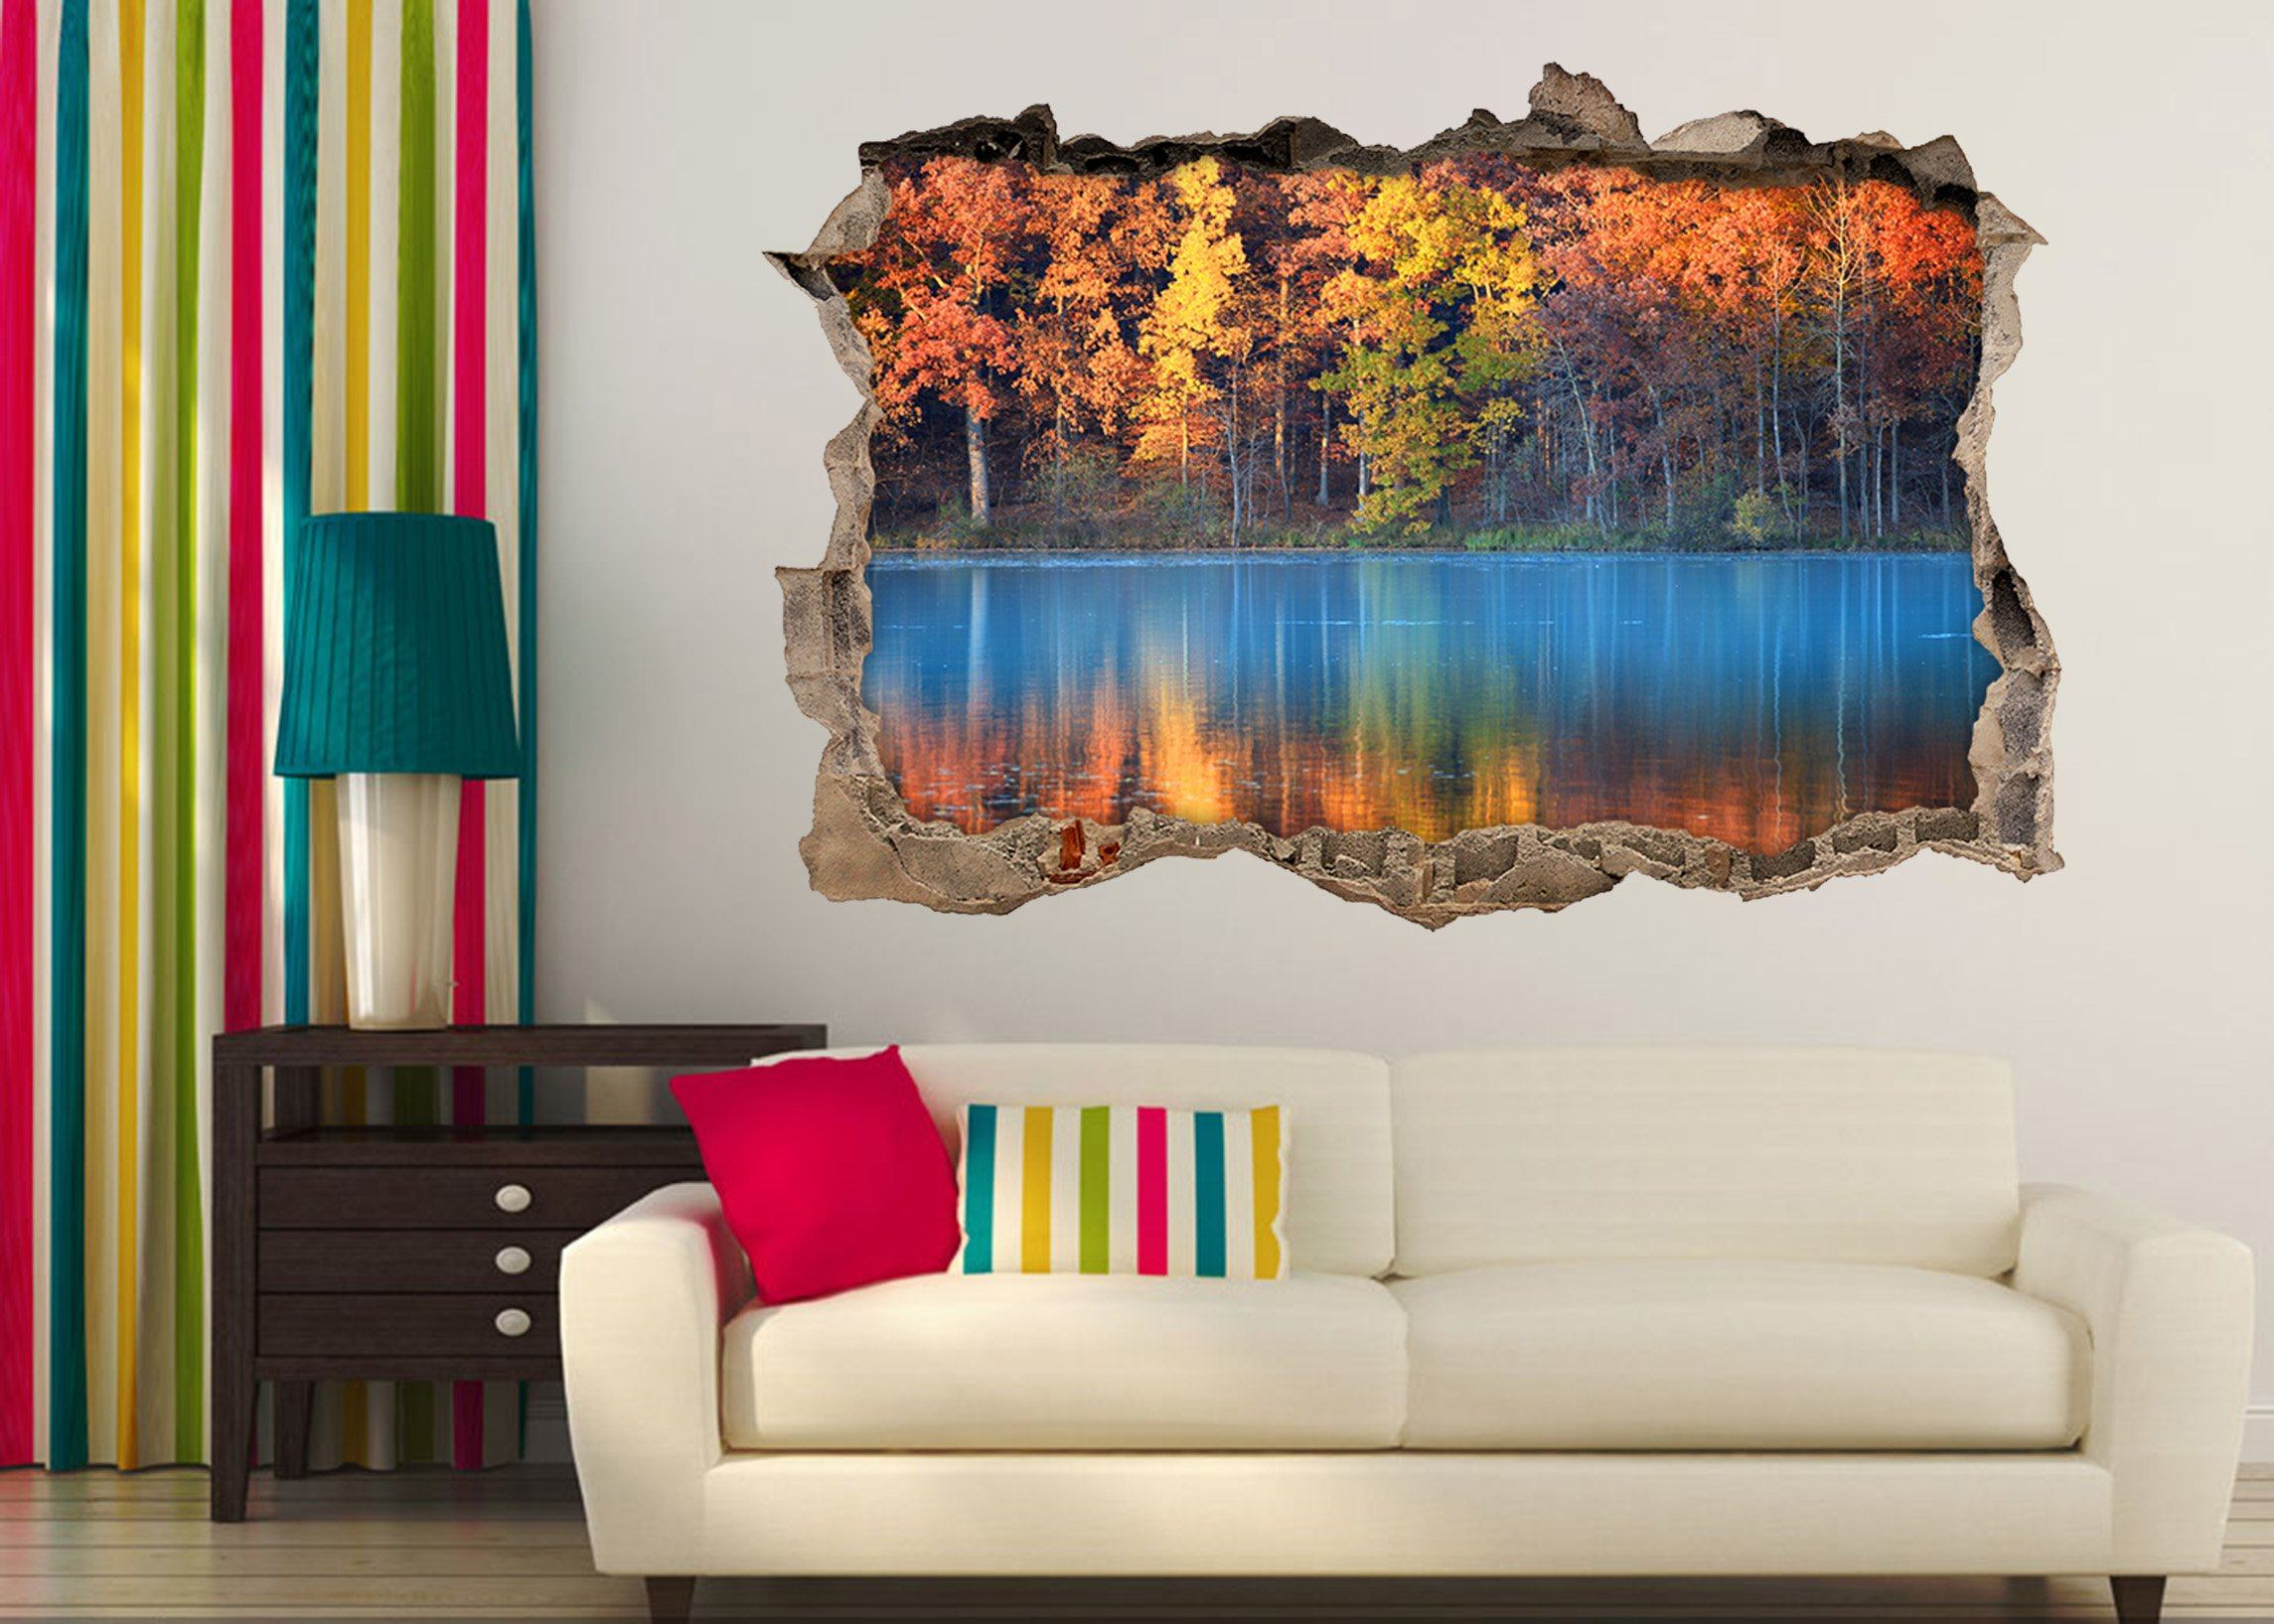 3D Colorful Forest Lake 045 Broken Wall Murals